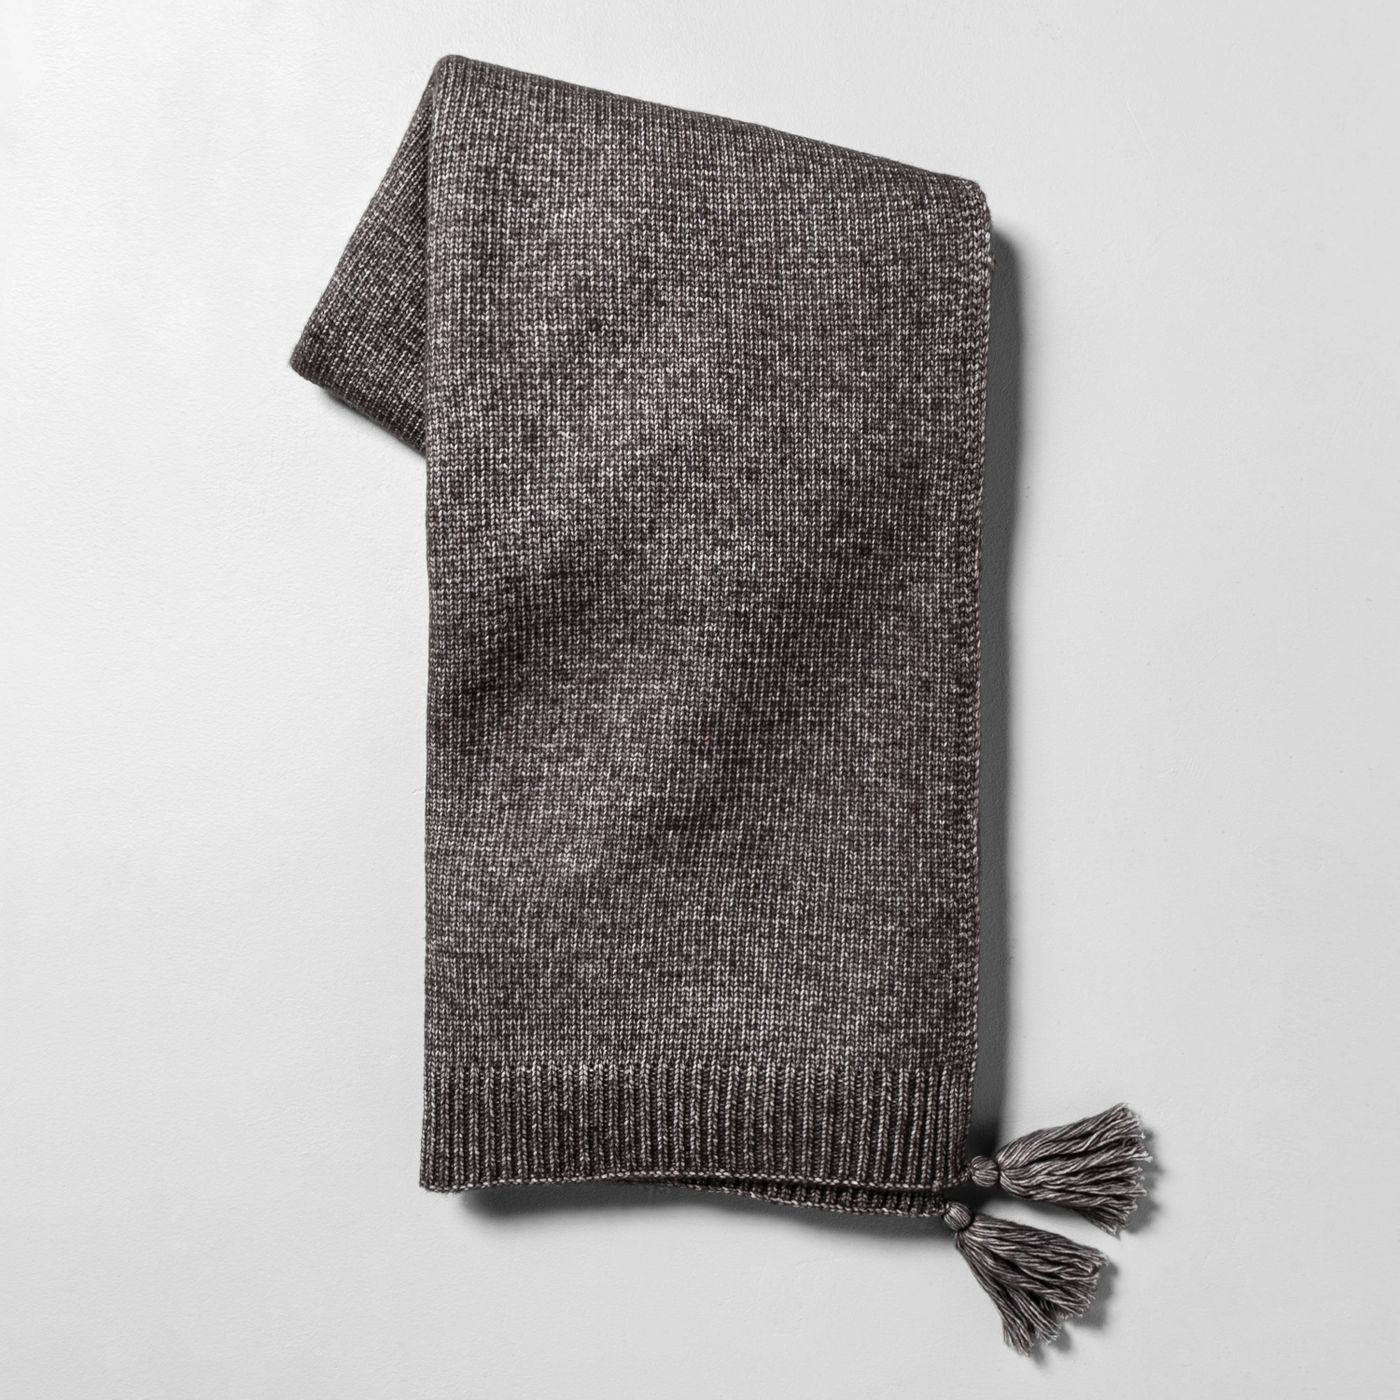 Throw Blanket with Tassels - Hearth & Hand™ with Magnolia - image 1 of 3